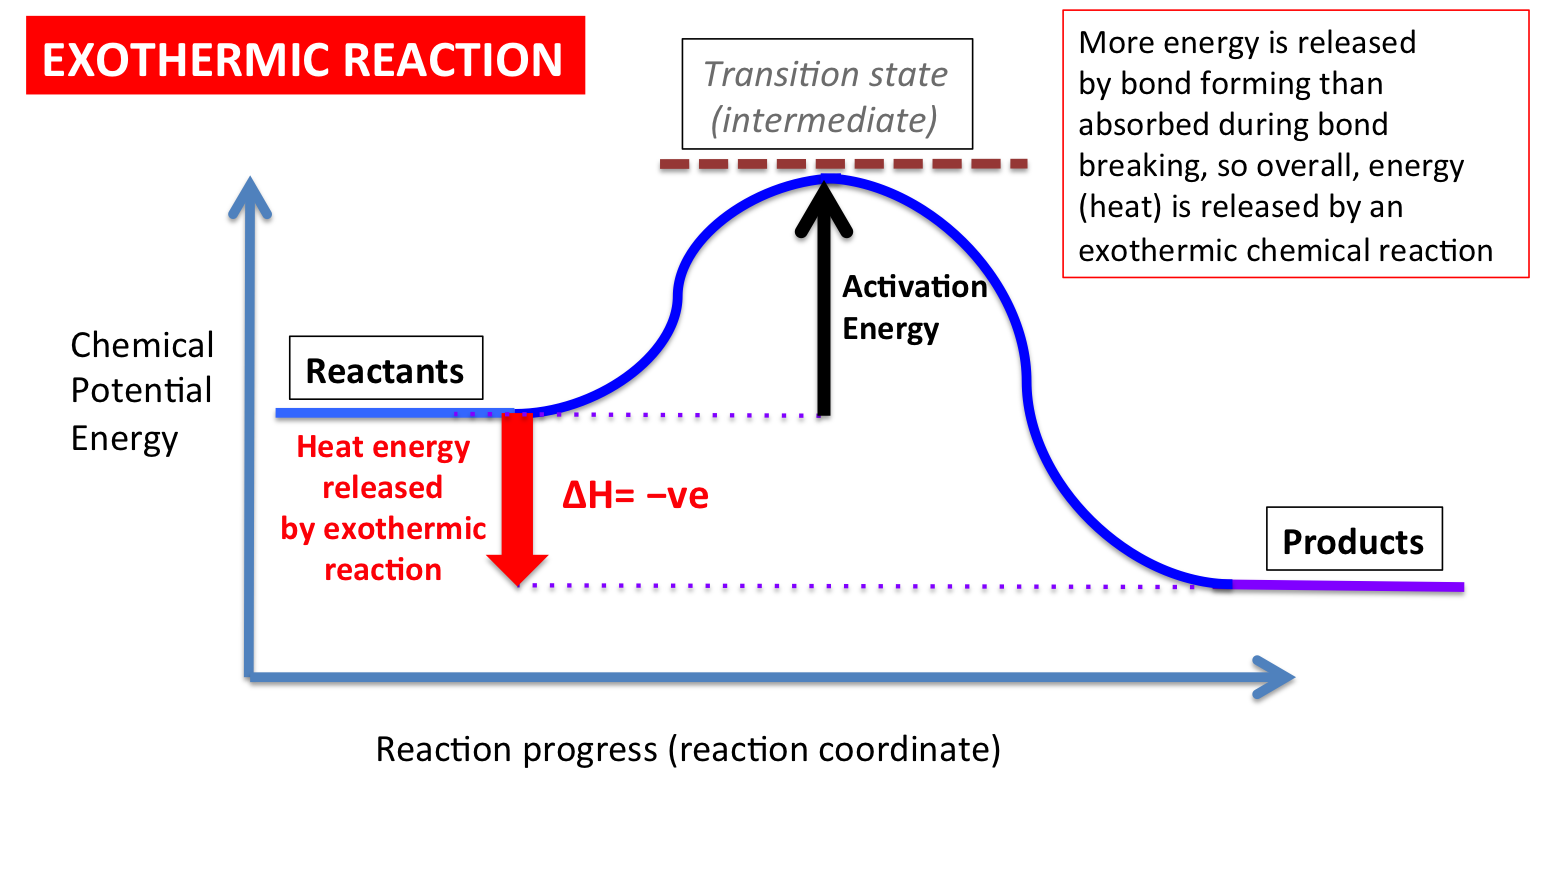 Endothermic Reaction Diagram For Water Great Installation Of Example State Transition Reactions Secondary Science 4 All Rh Secondaryscience4all Wordpress Com Simple Examples